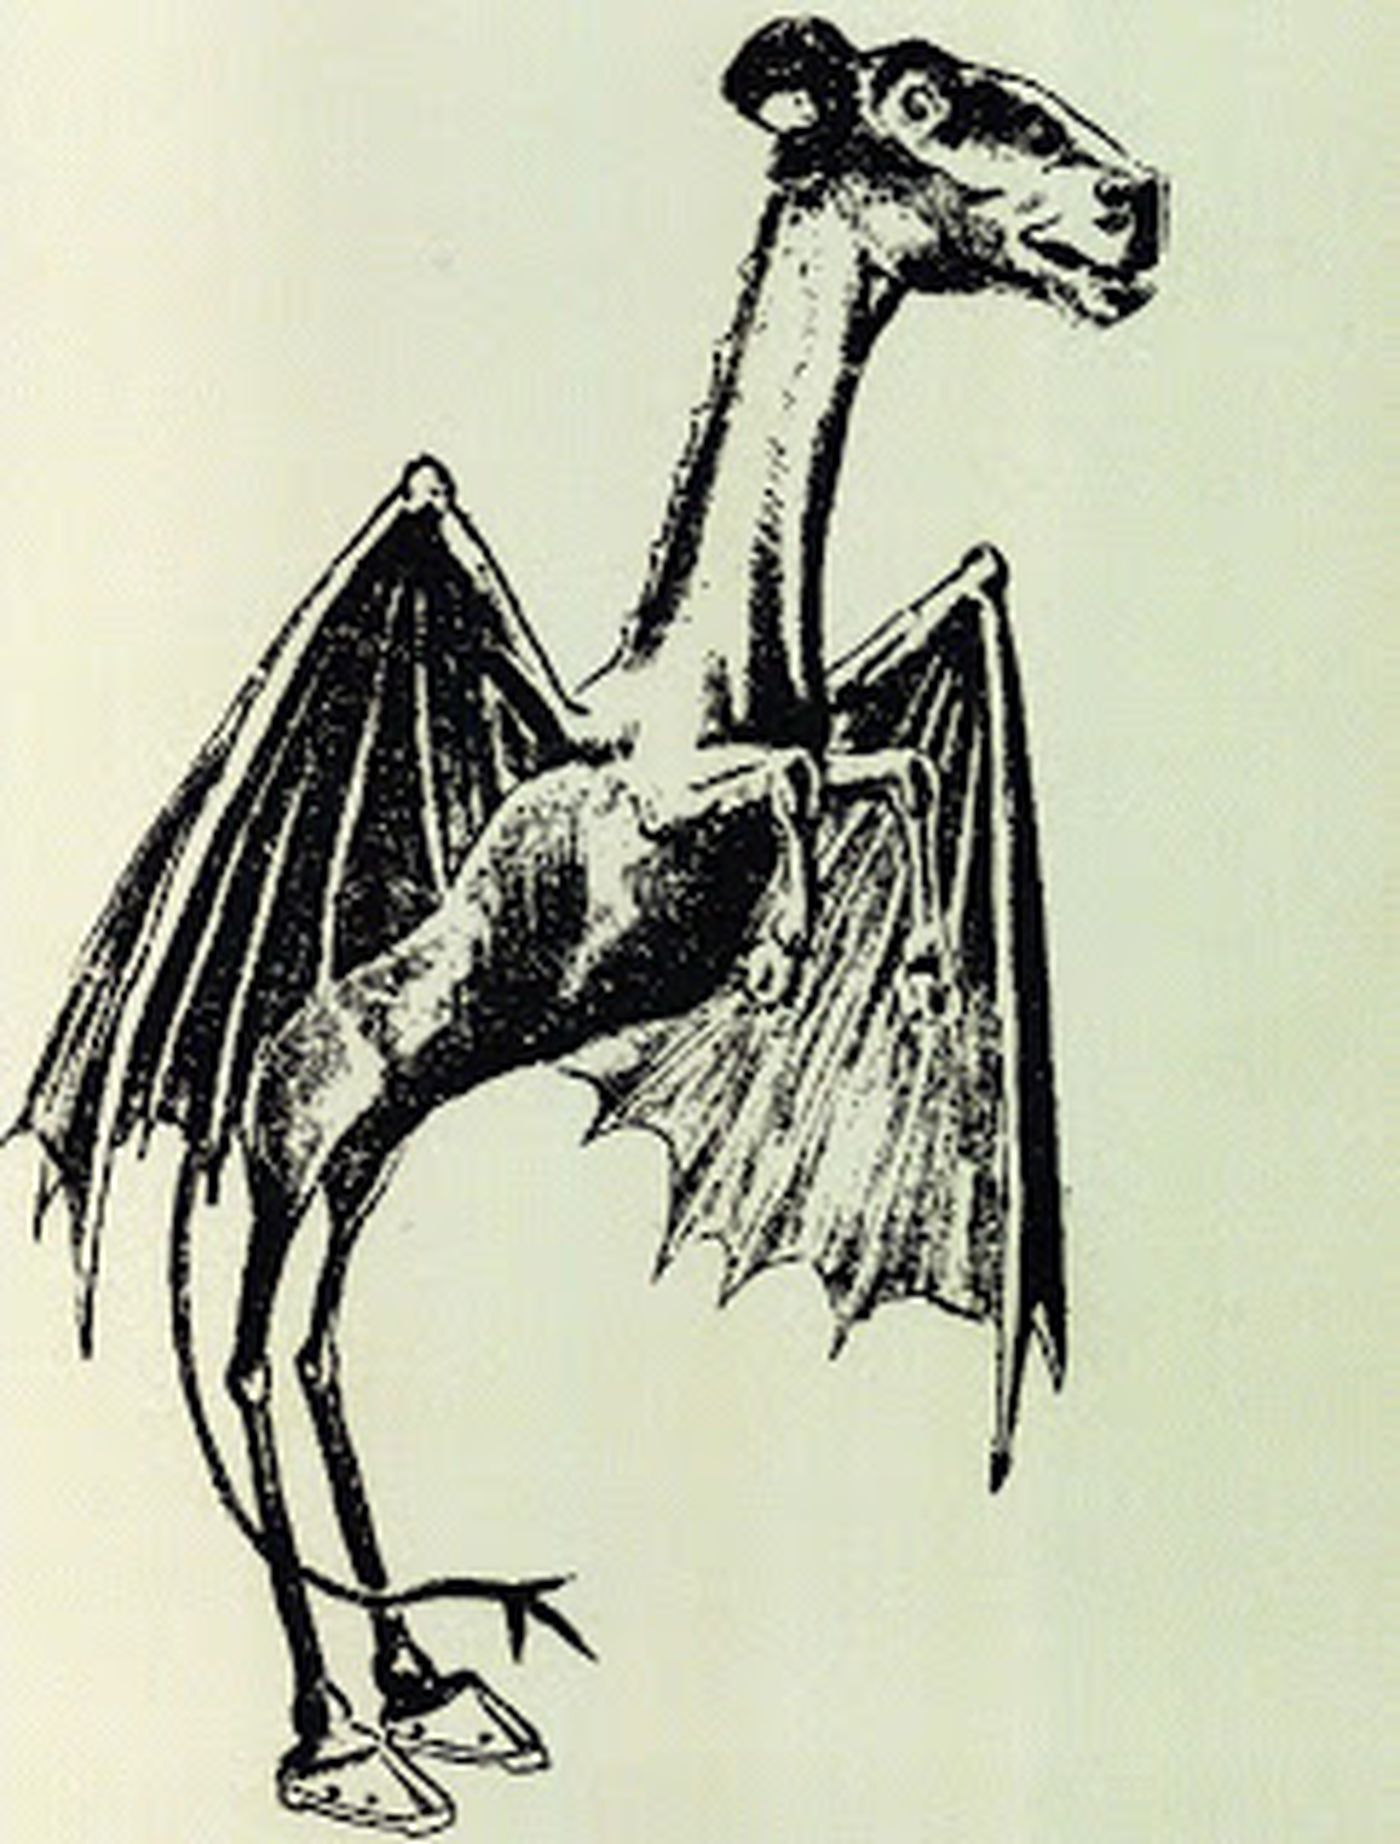 How the Jersey Devil allegedly looks like